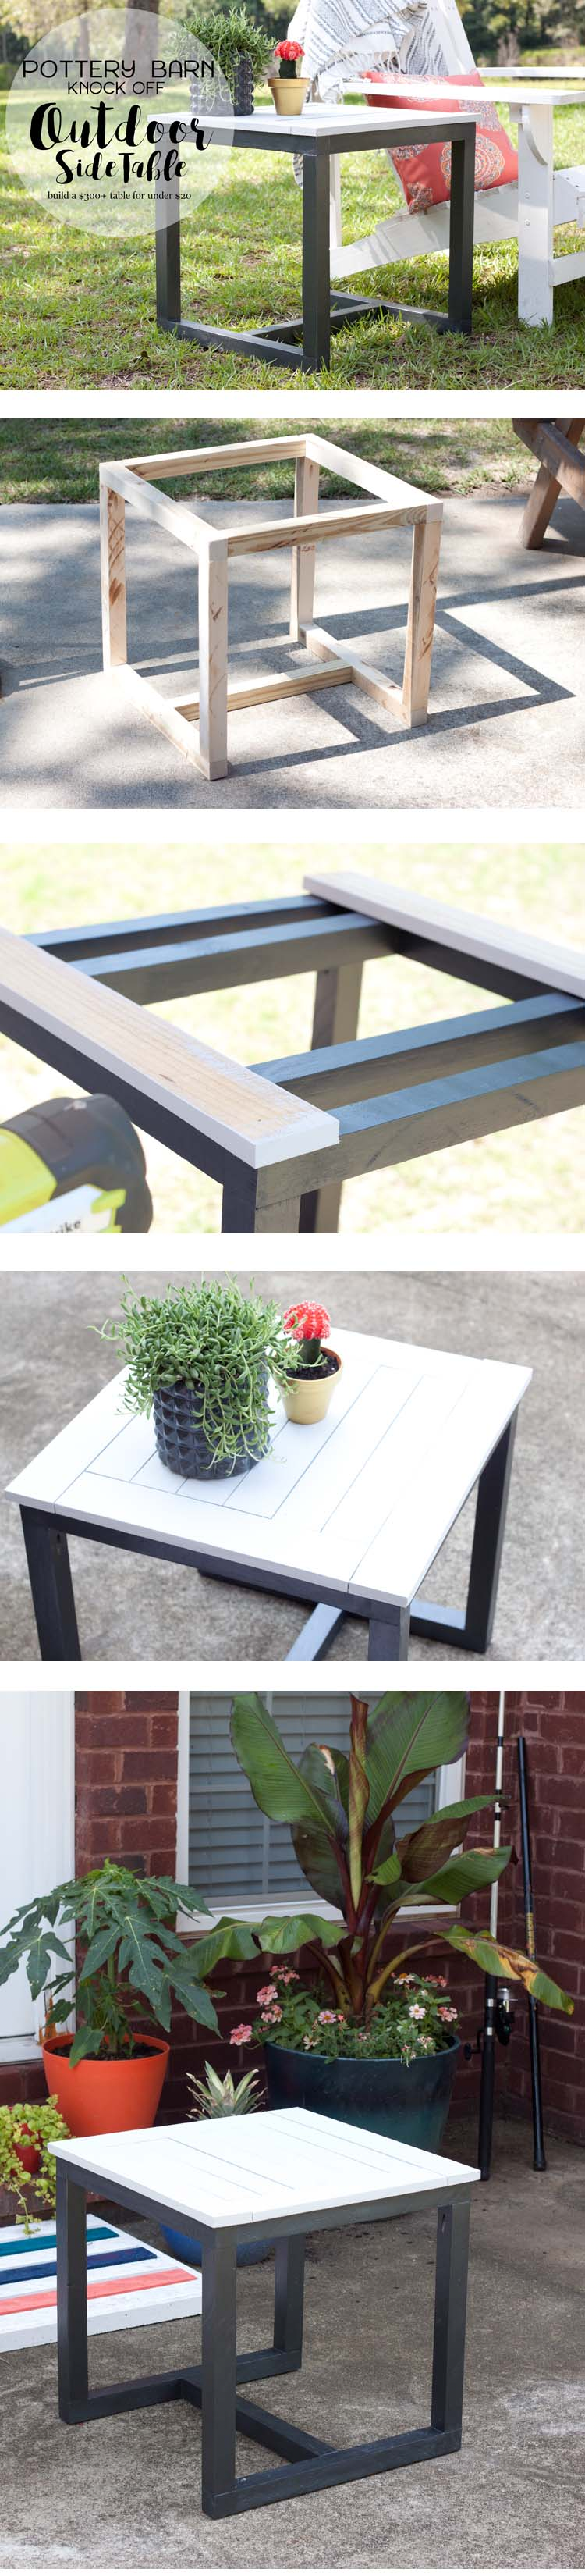 diy outdoor side table pottery barn knockoff carmen knock off small accent cabinet with doors blue wood coffee antique pedestal end mini tiffany lamps waterproof garden furniture